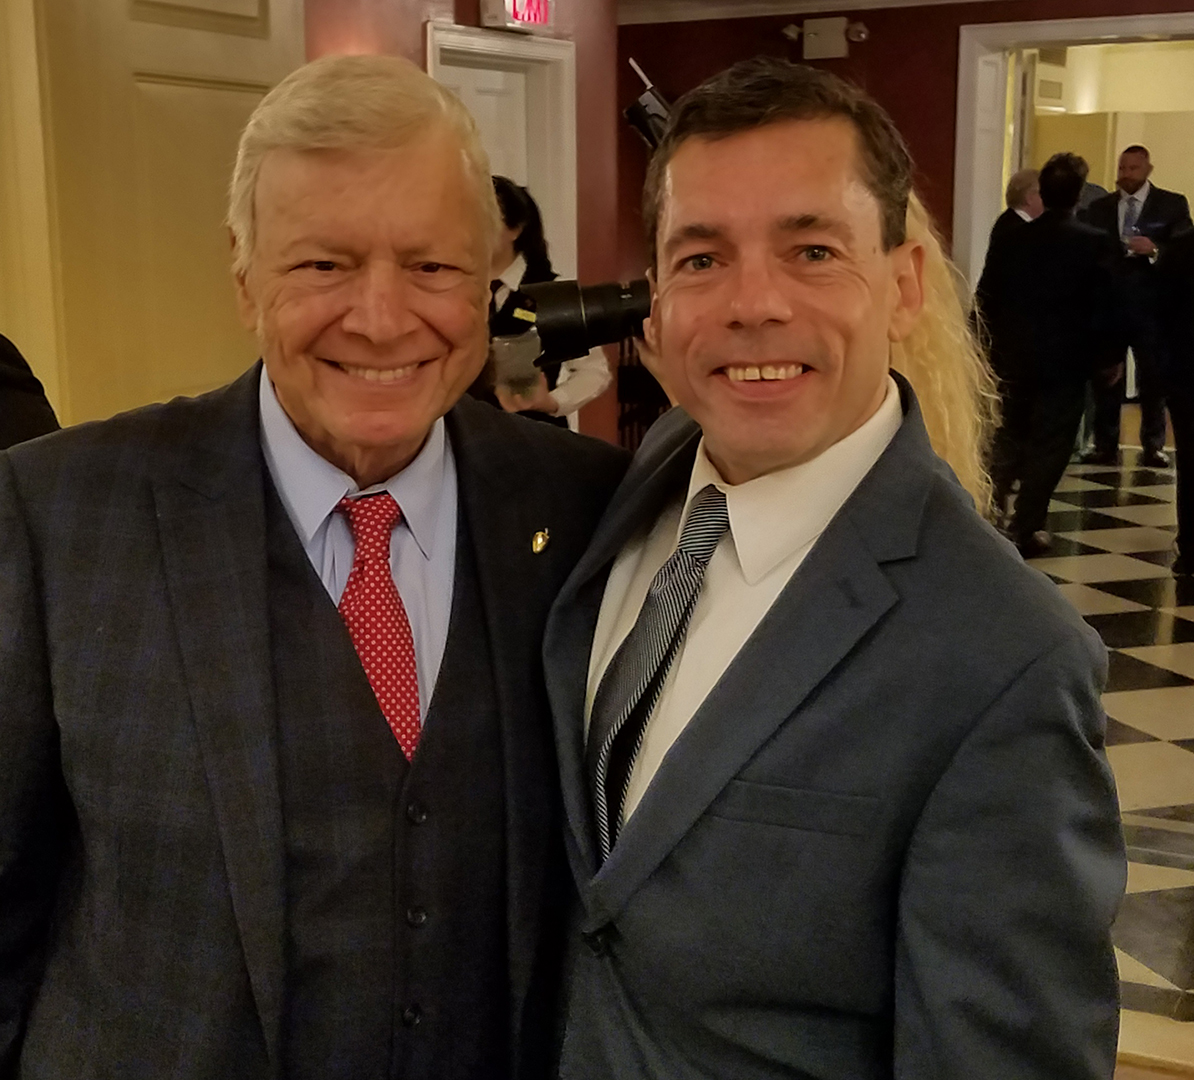 Honorable-Peter-Vallone-Sr-and-Mark-Derho-at-PAL-Benefit-NYC-2017